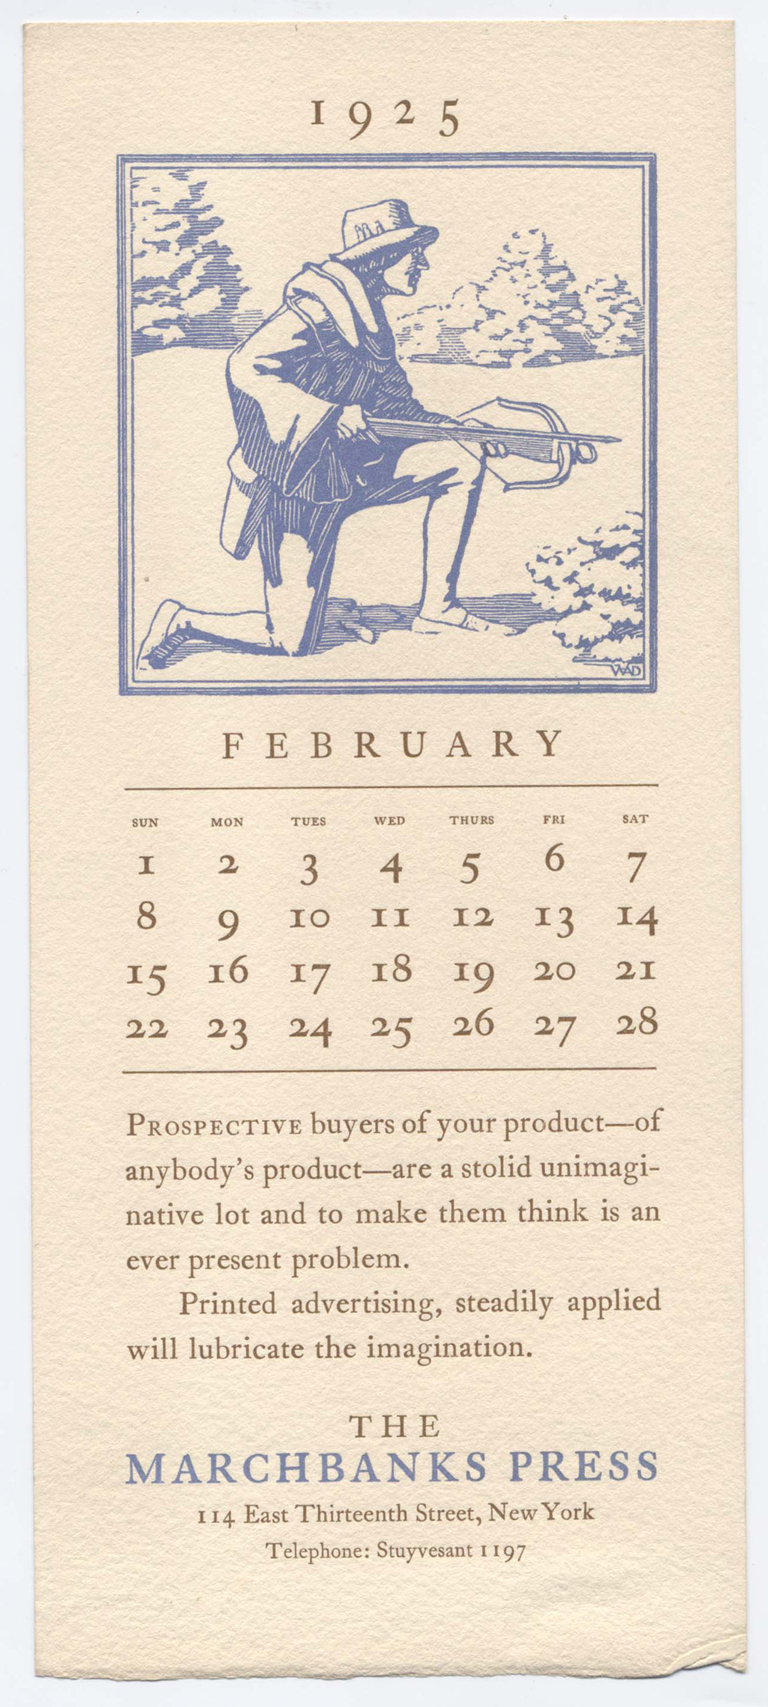 The Marchbanks Calendar for February 1925. Illustration by W.A. Dwiggins, typography and printing by The Marchbanks Press. Image from private collection of Charles Nix.